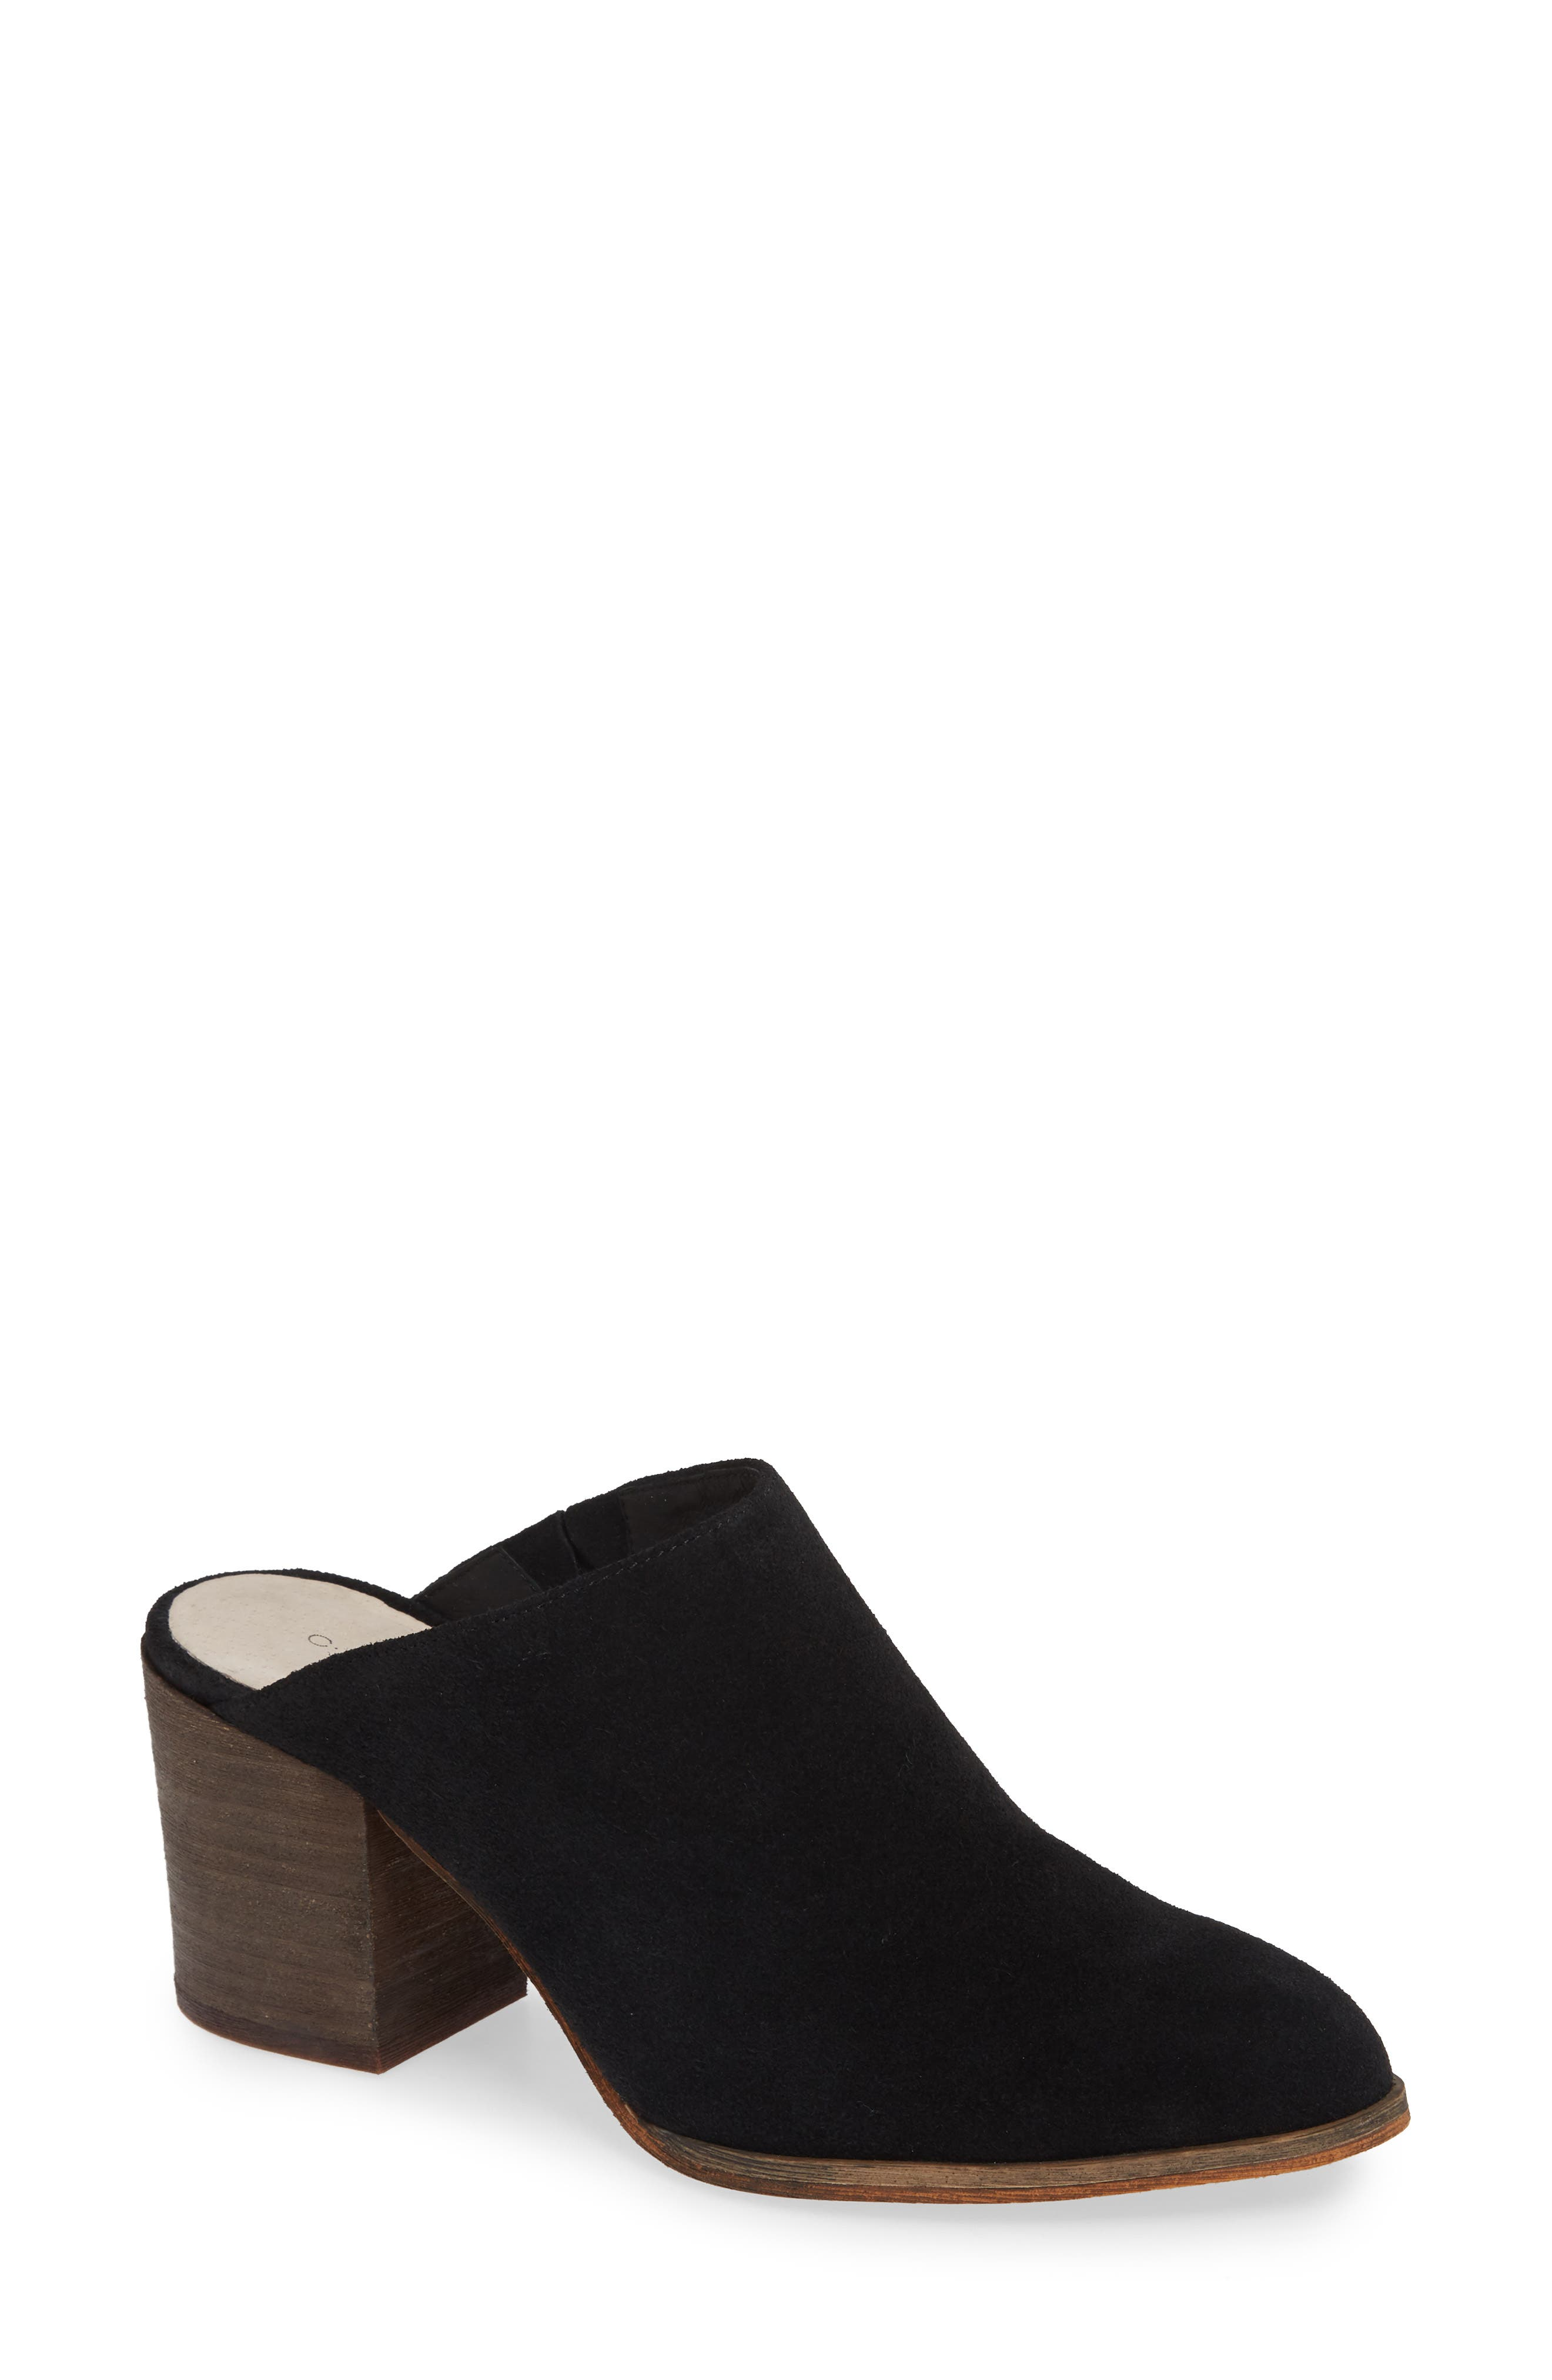 Miccah Mule,                             Main thumbnail 1, color,                             BLACK SUEDE